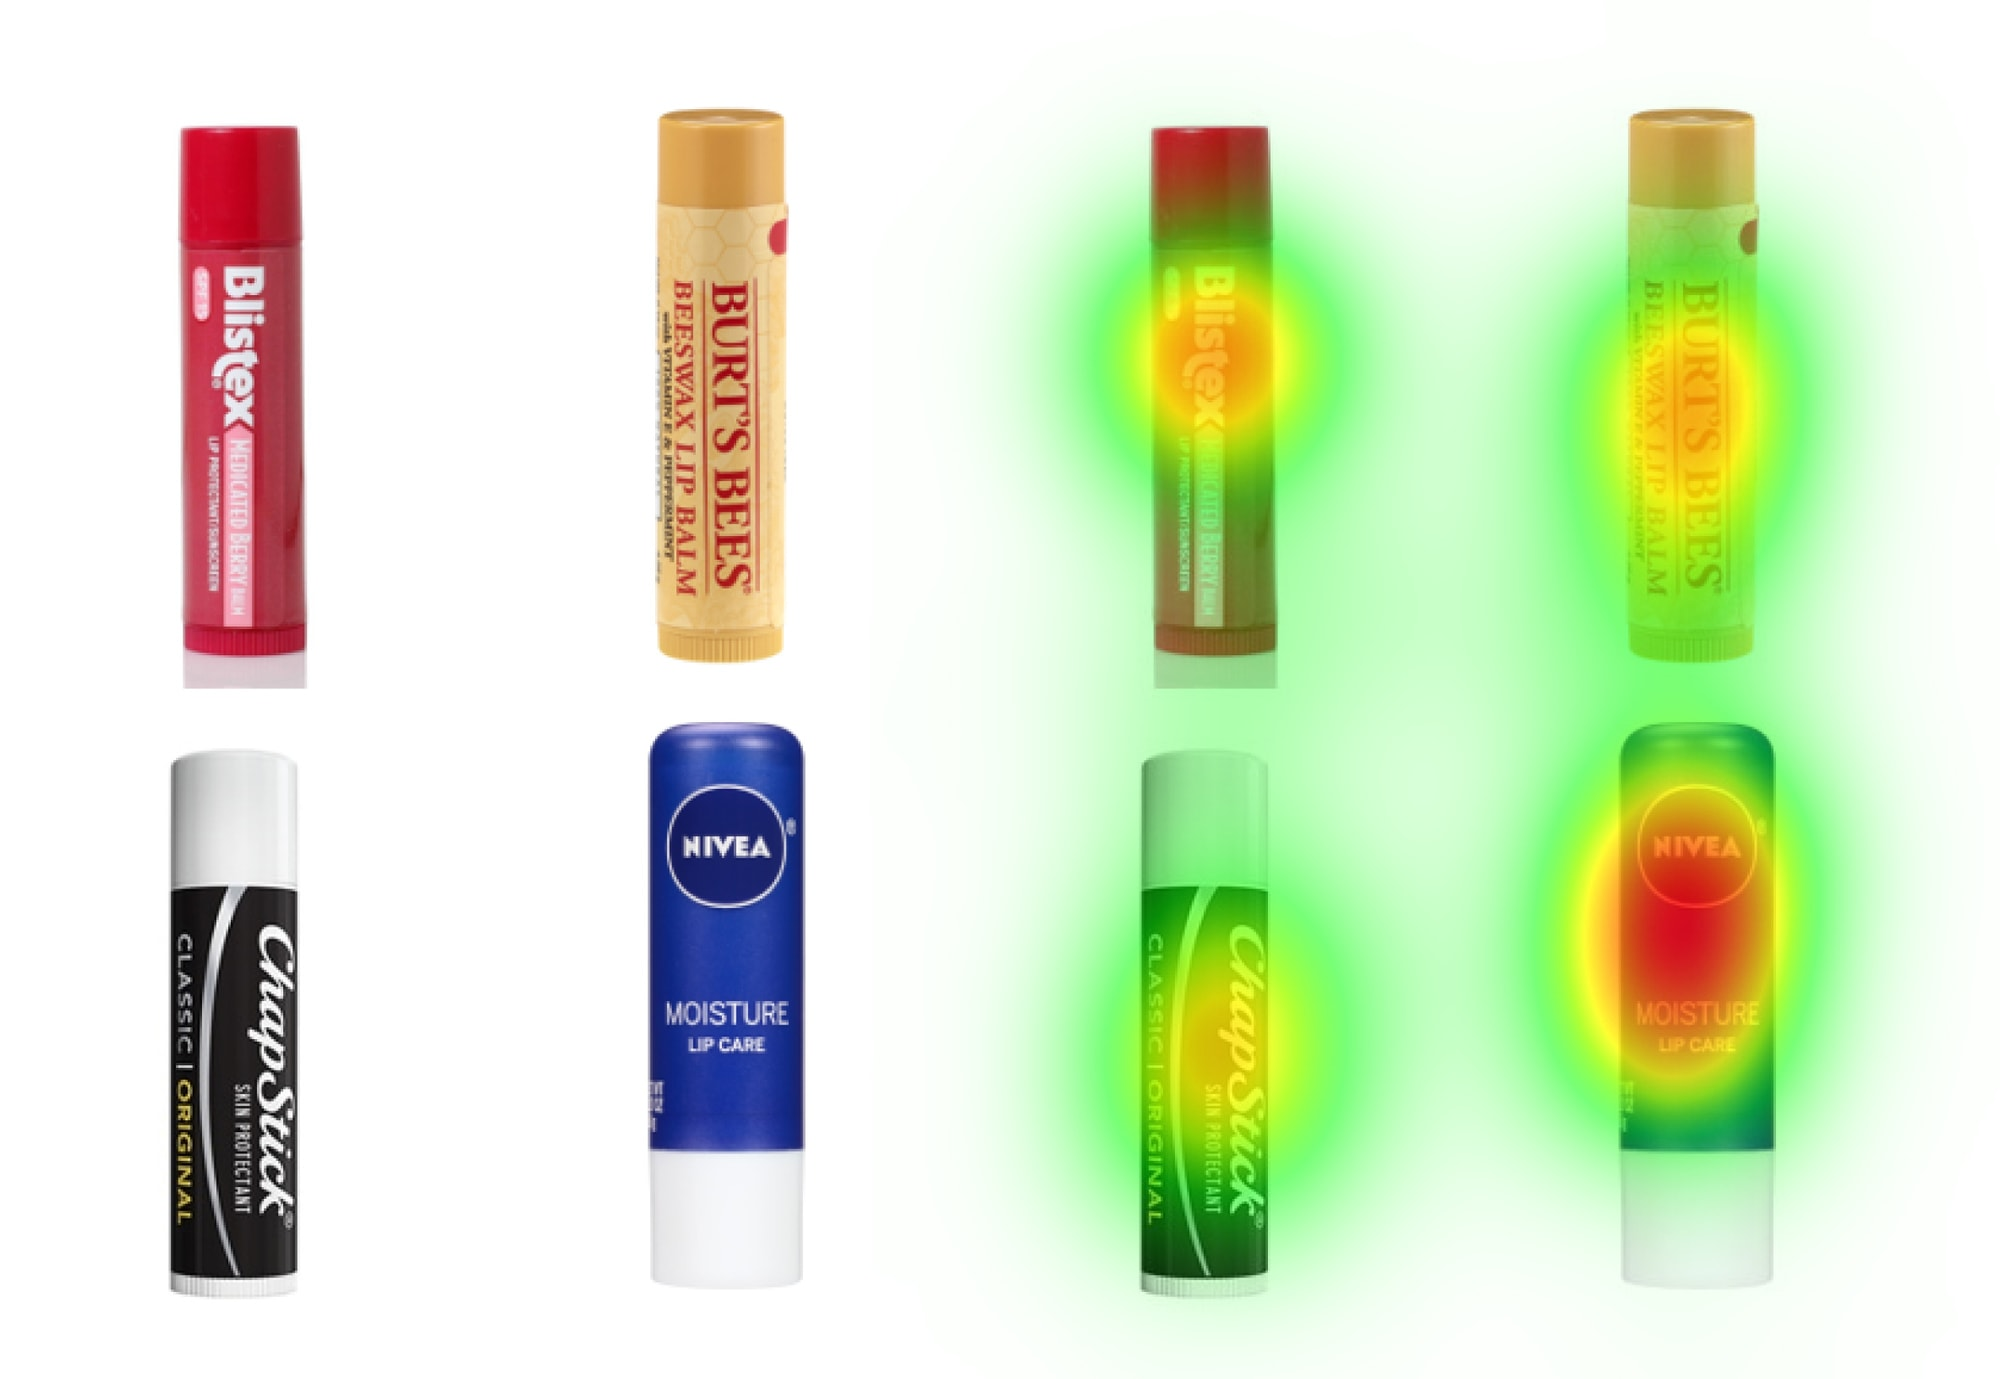 Chapsticks with the NeuroVision heatmaps over them.